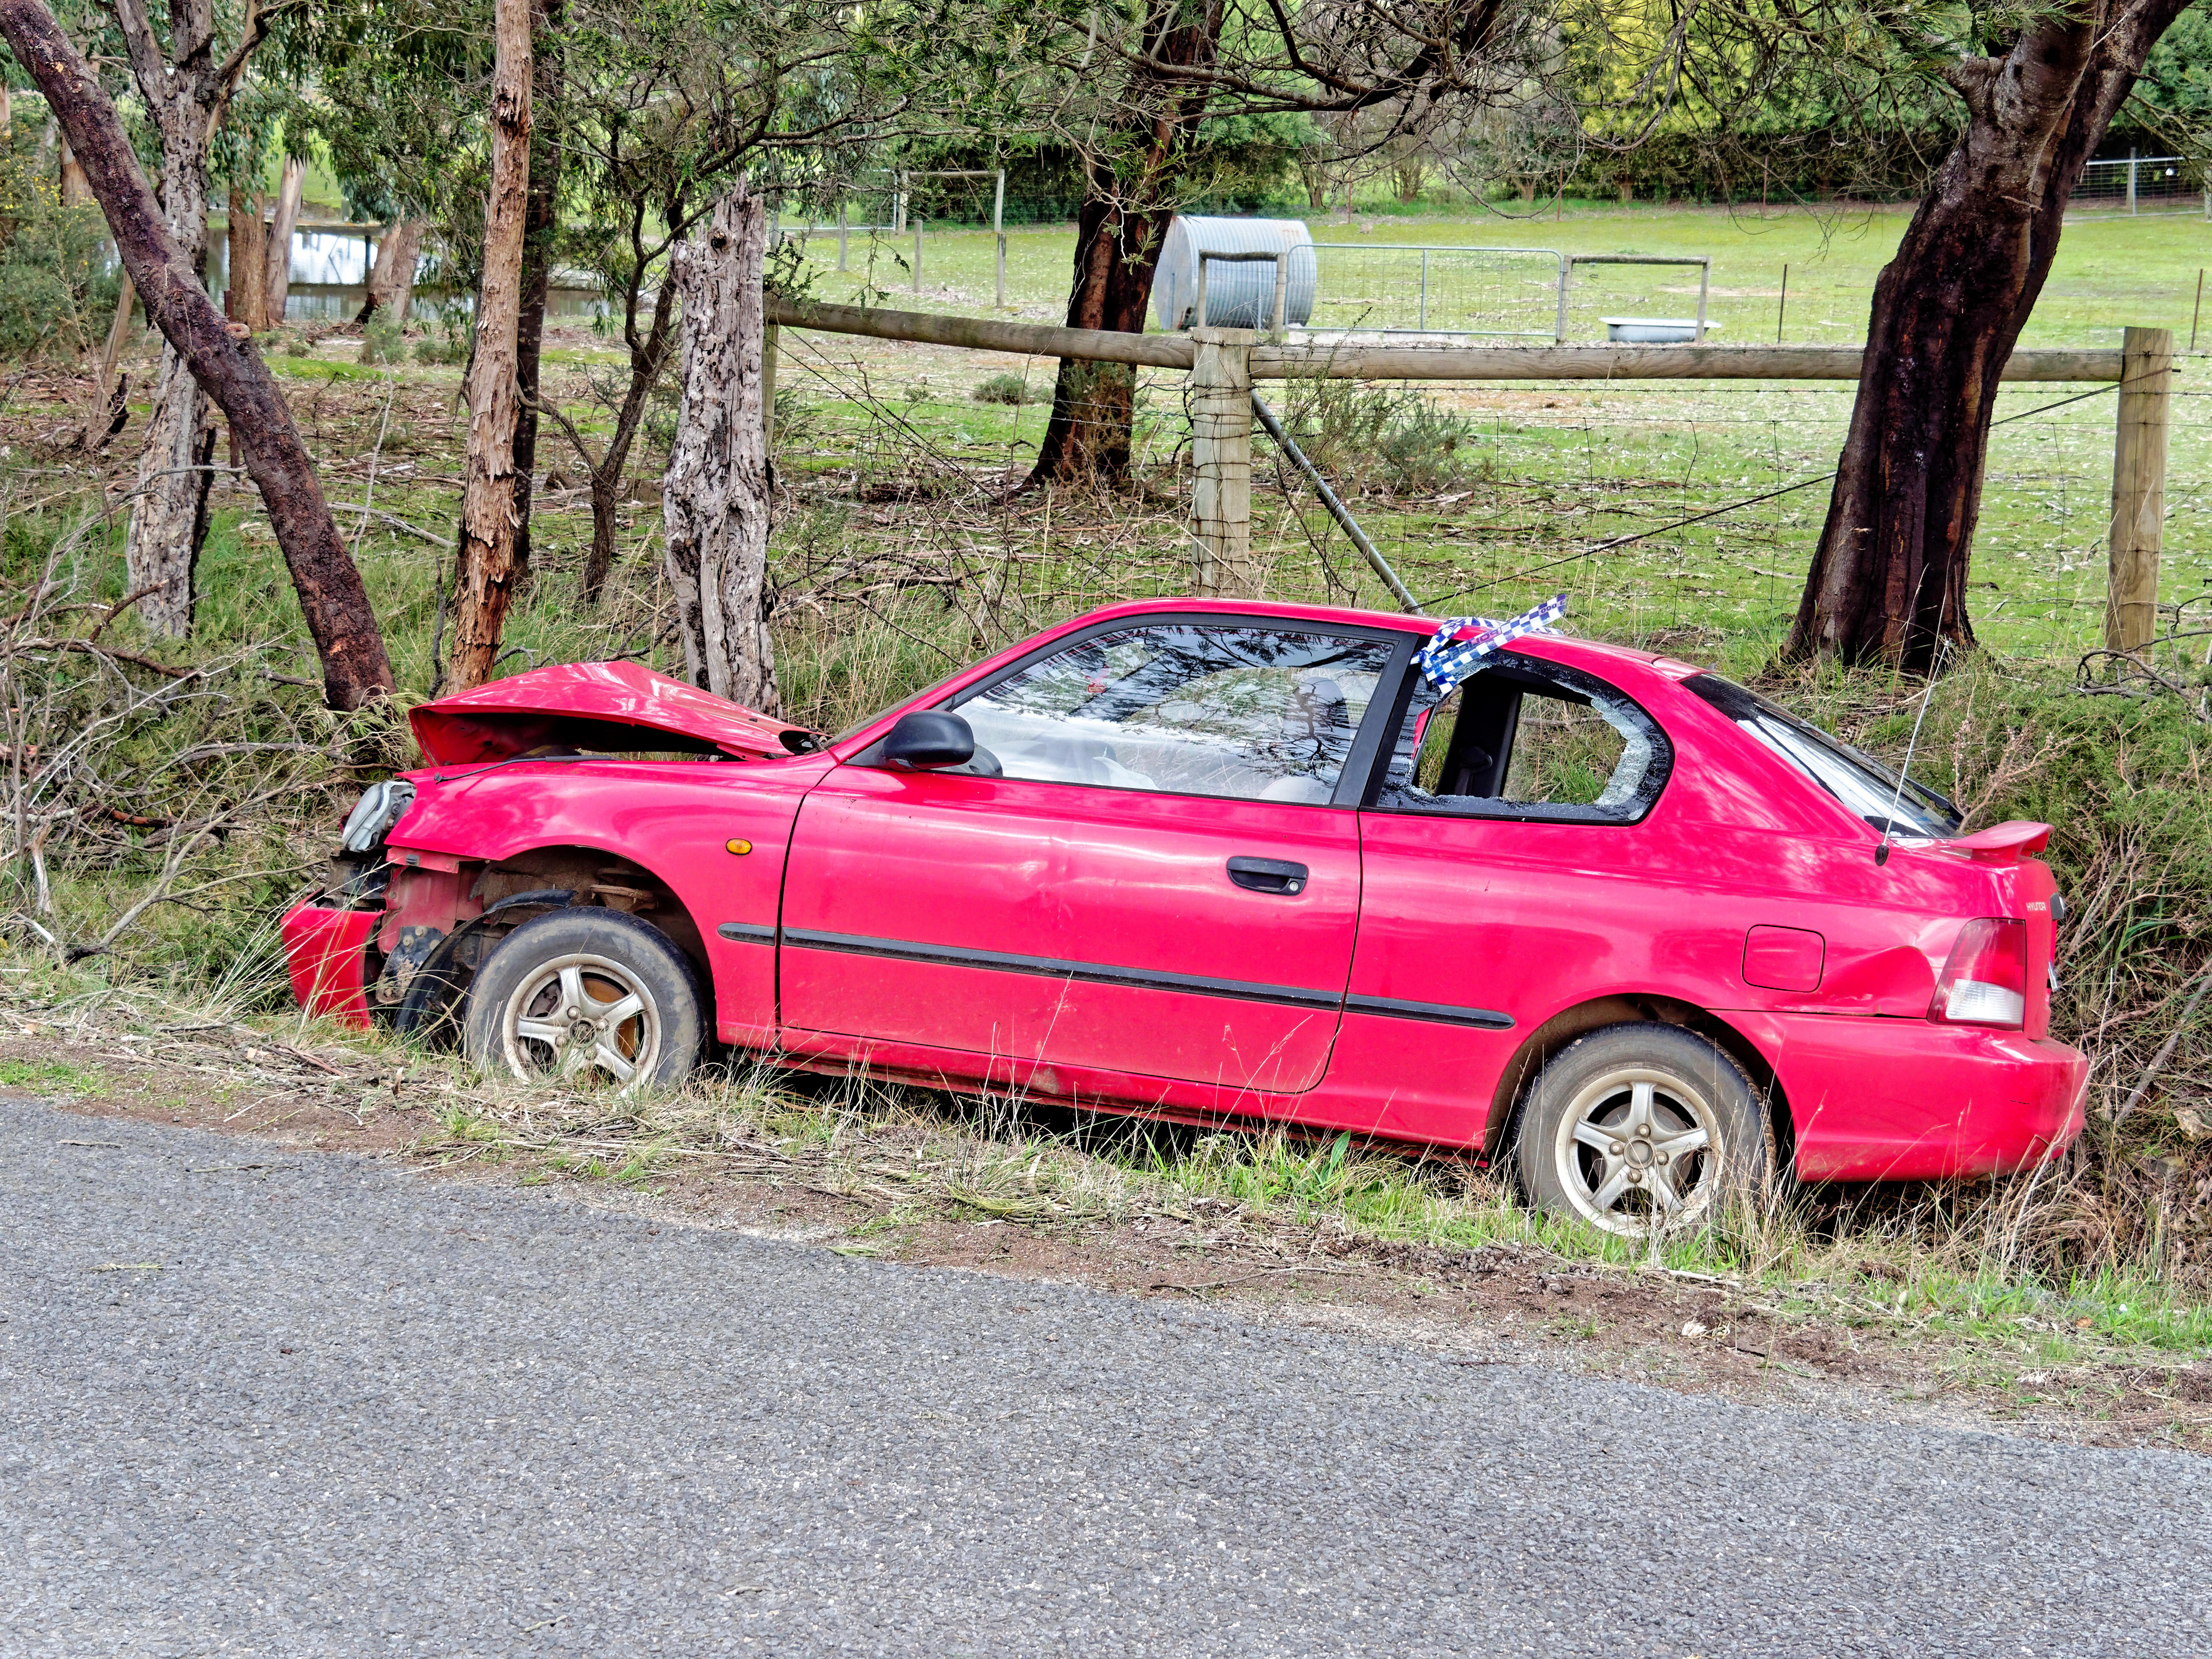 This should be Crashed-car-2.jpeg.  Is it missing?